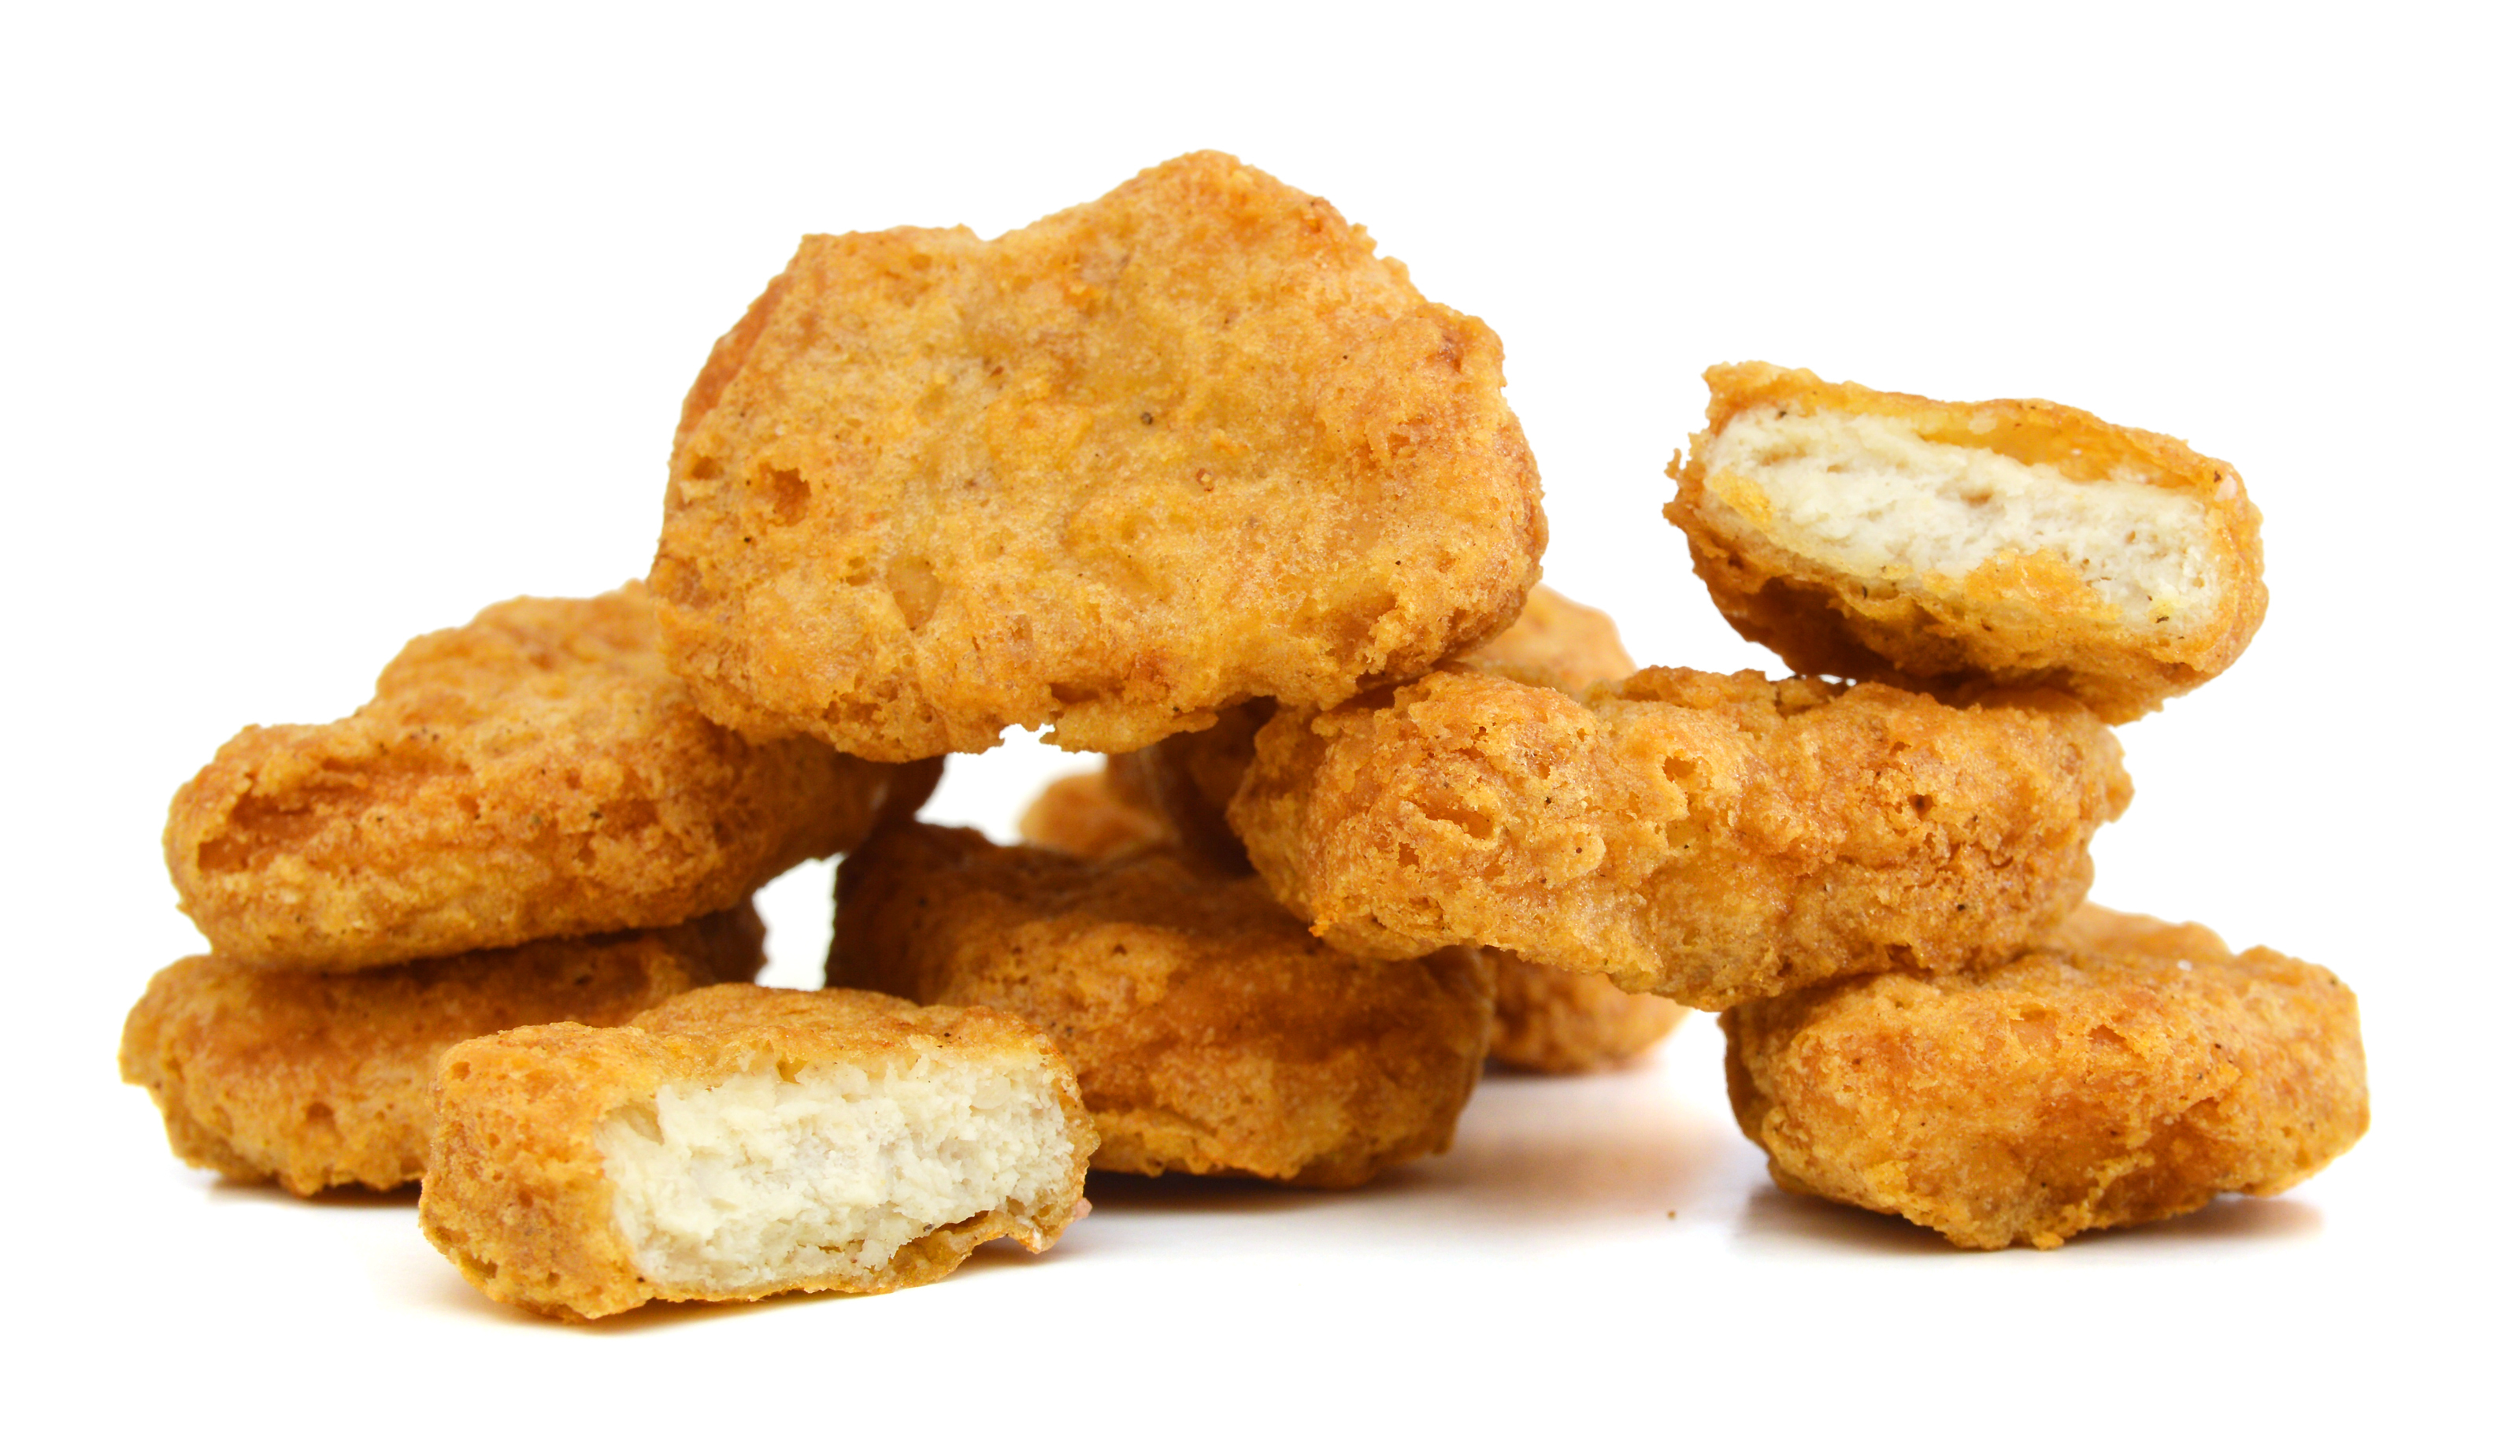 Nugget Wallpaper